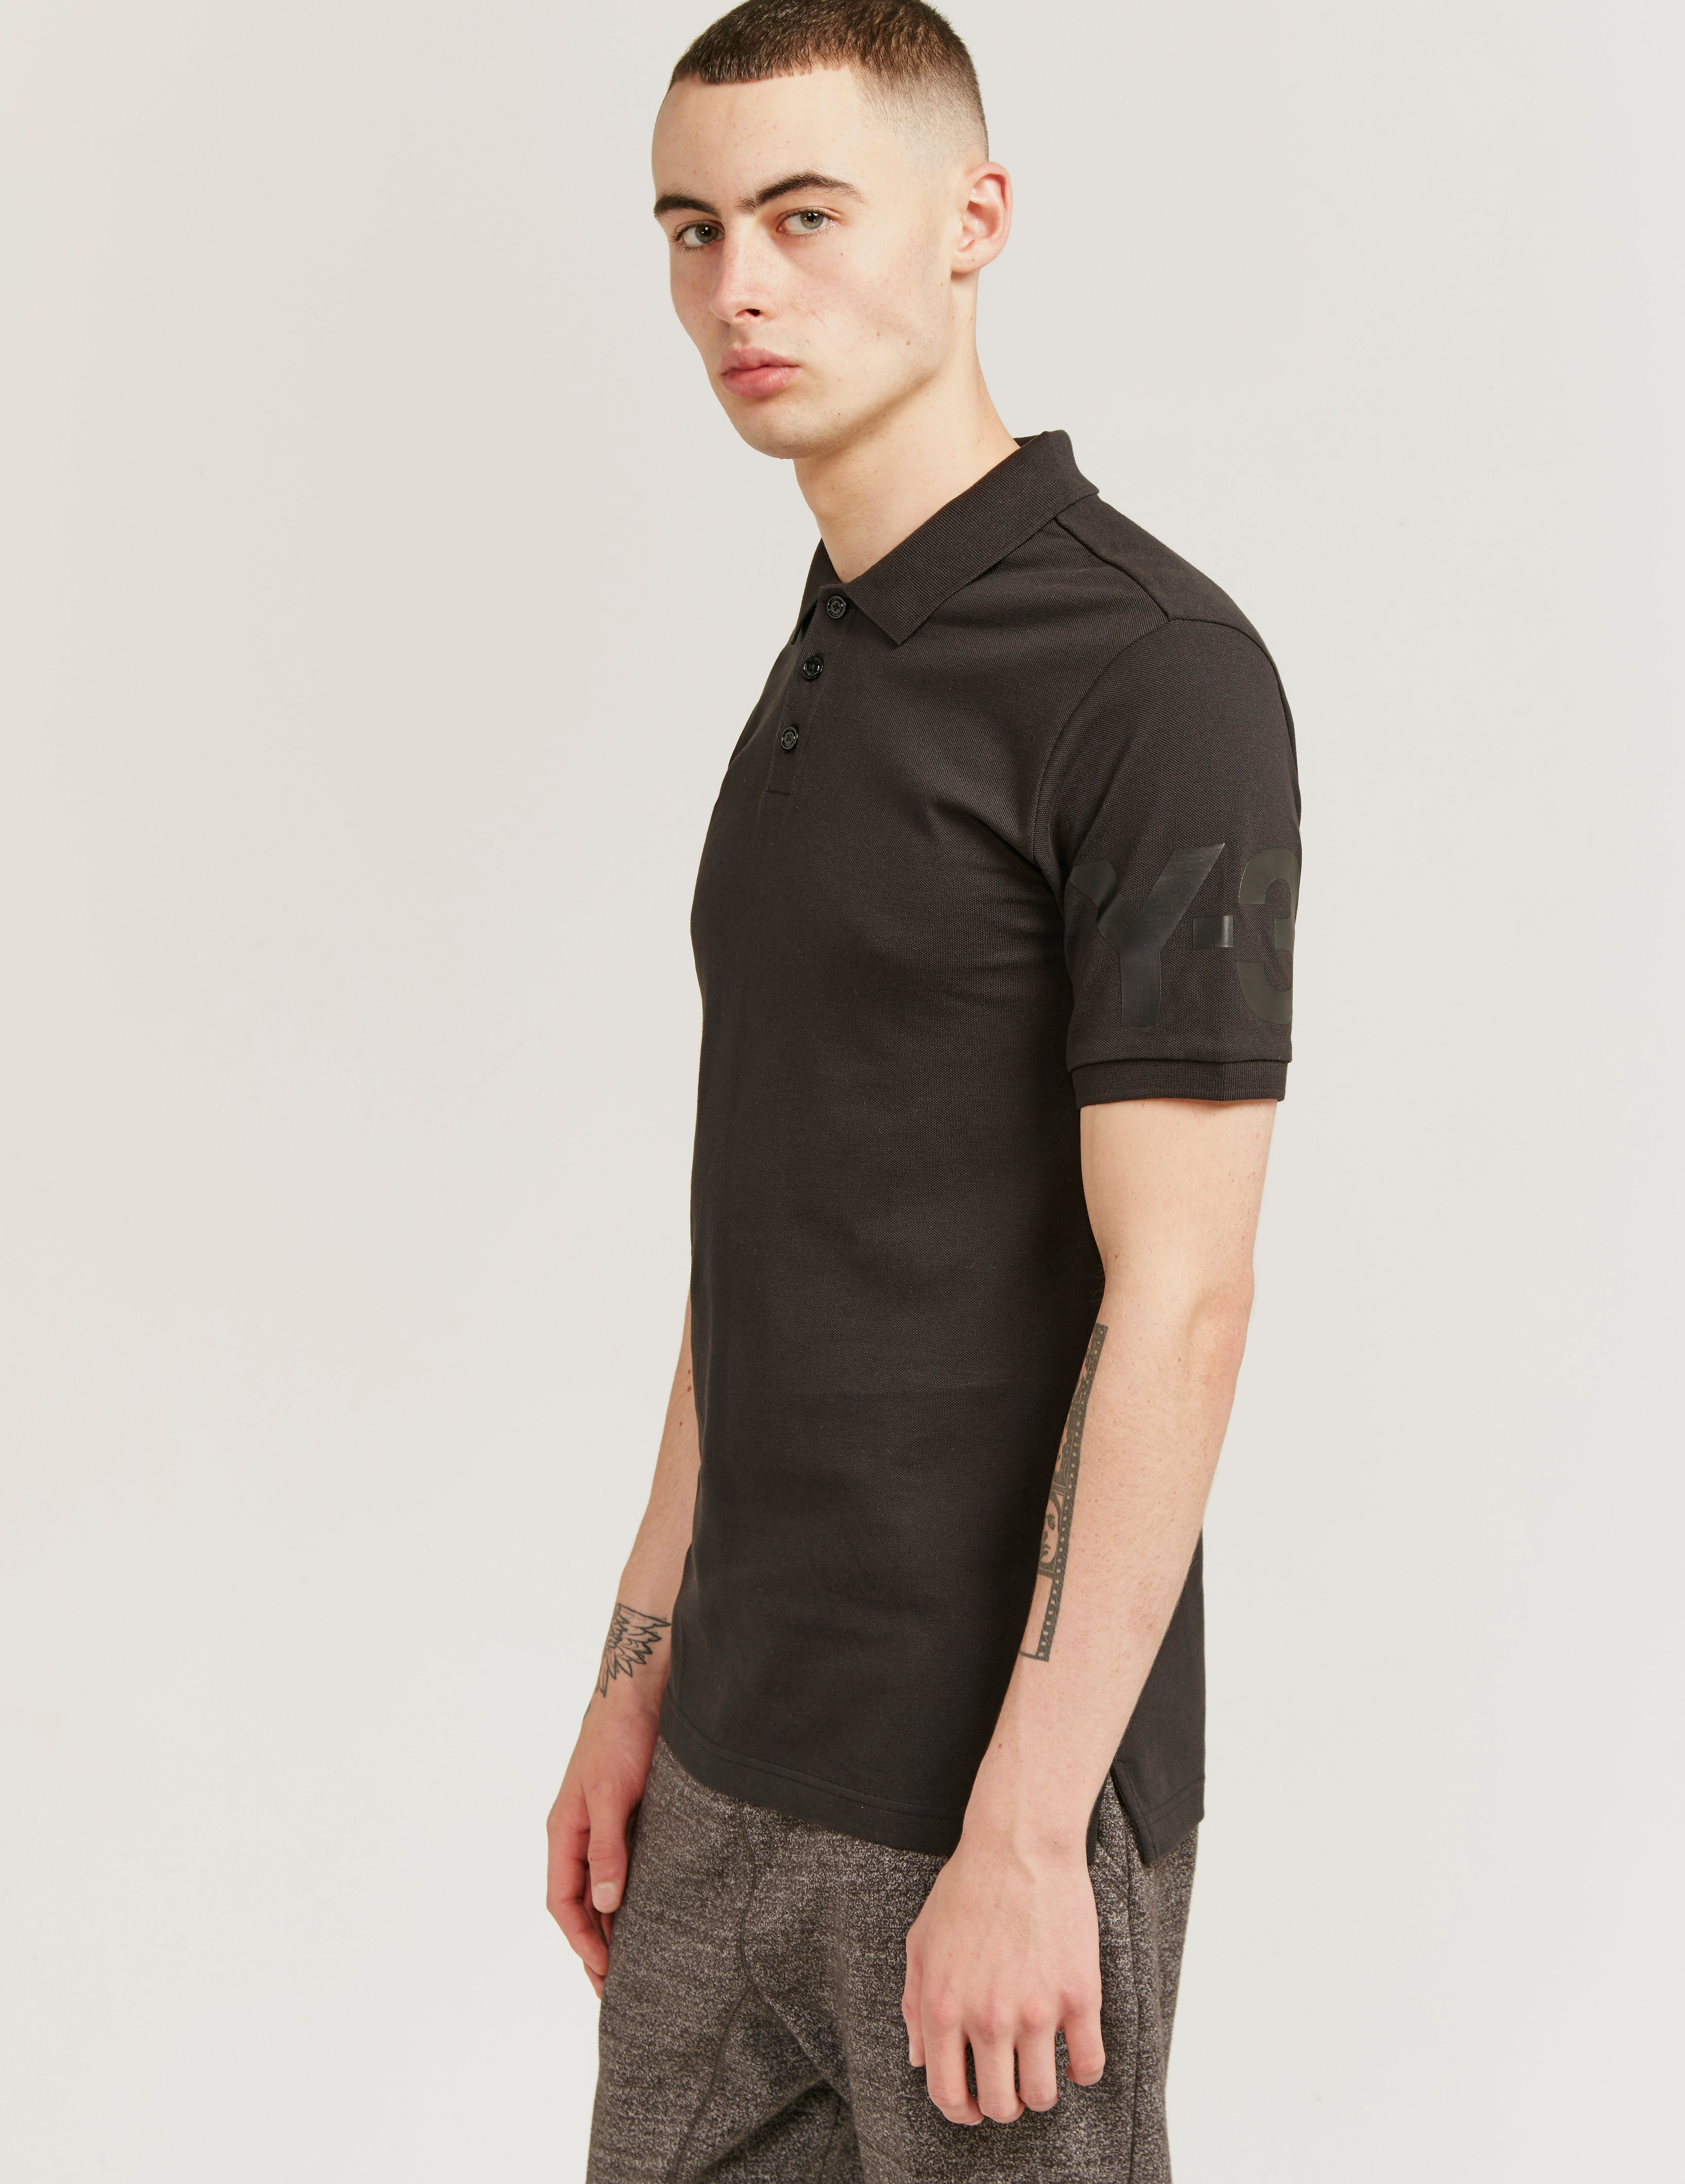 Y-3 MCL Polo Shirt